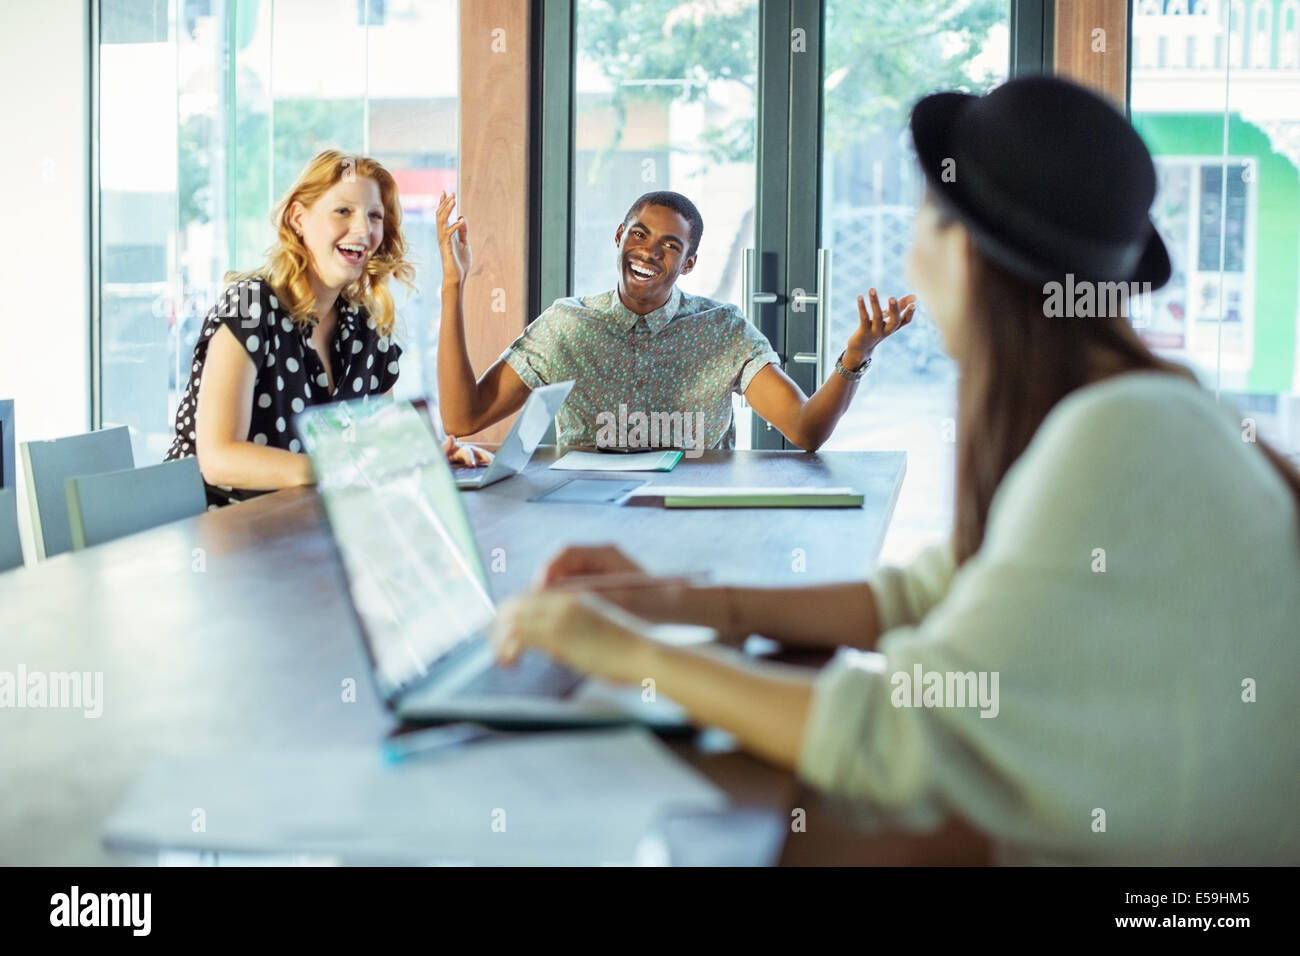 Les personnes travaillant au conference table Photo Stock